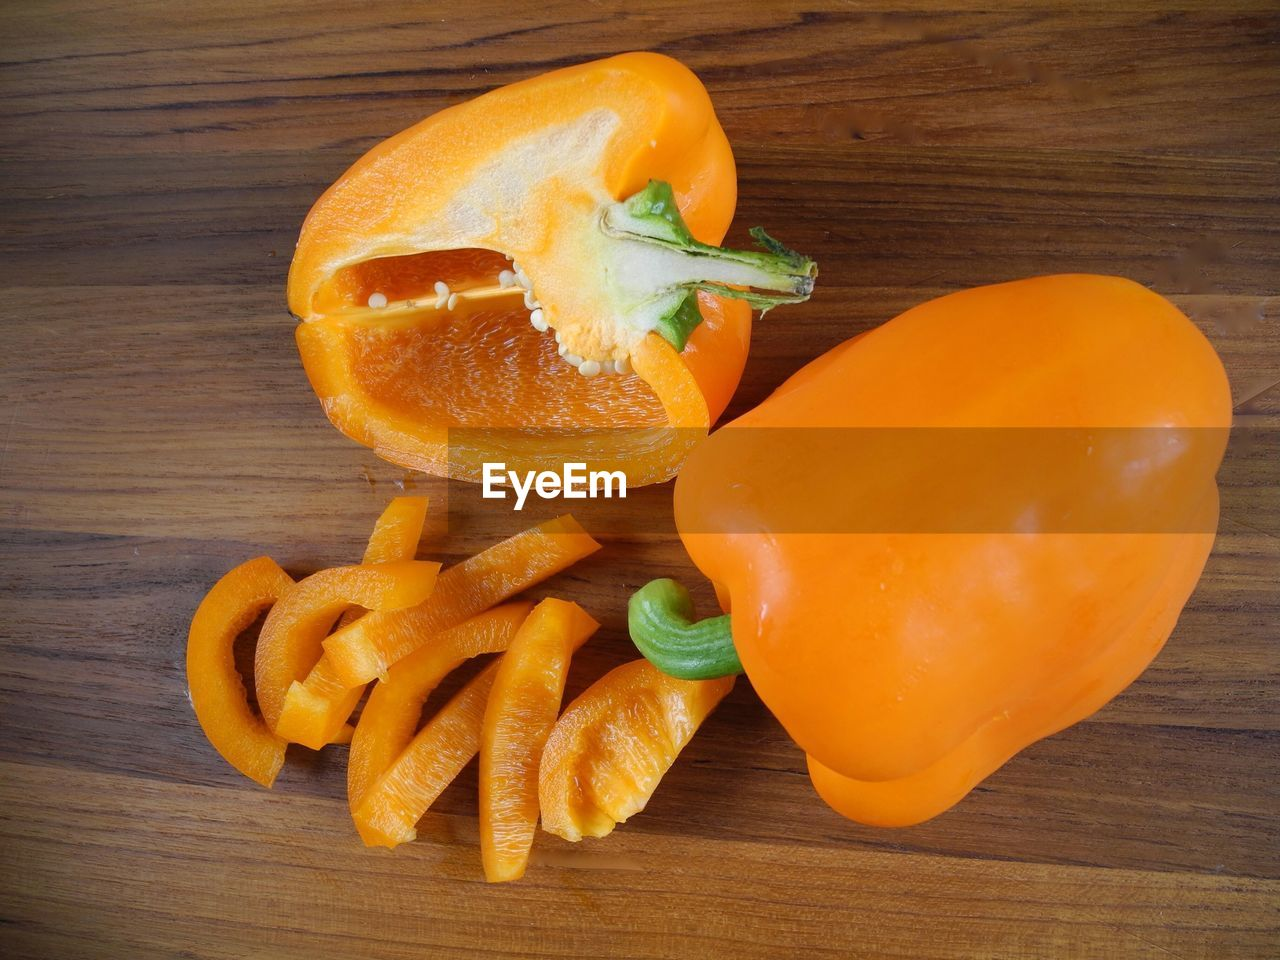 Close-up of orange bell peppers on cutting board